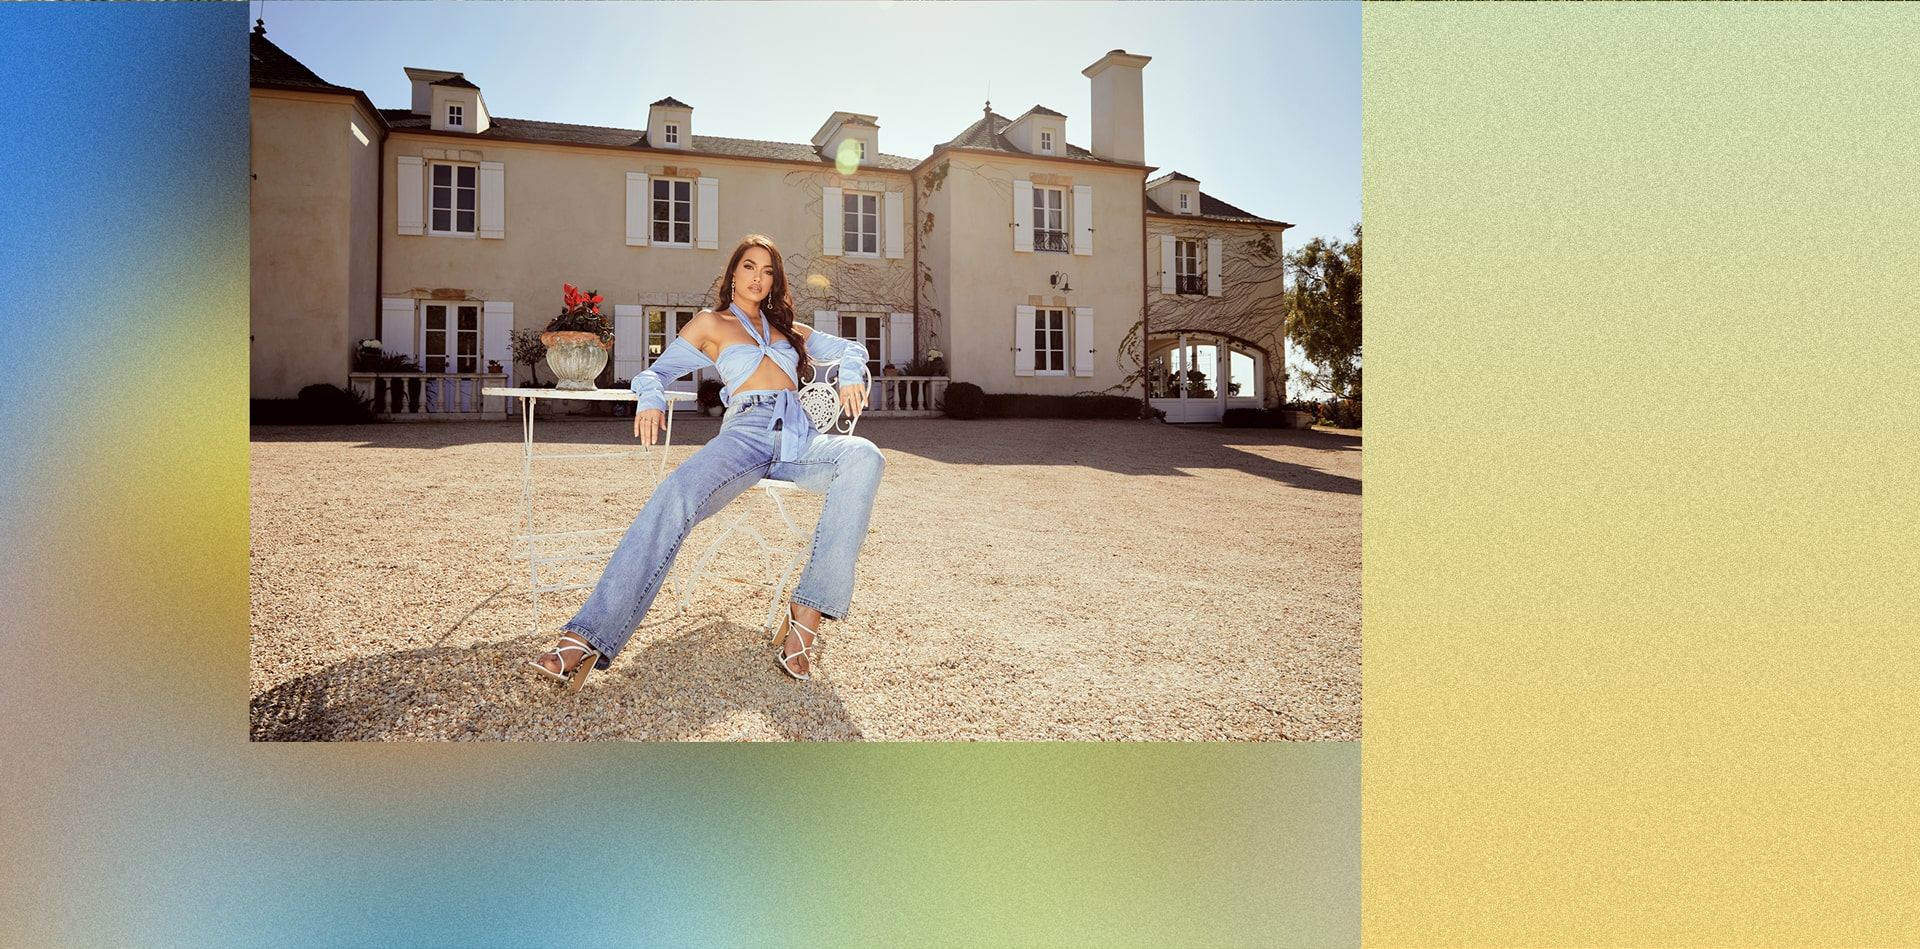 Garden Party Spring Fling Lookbook Image Desktop 2